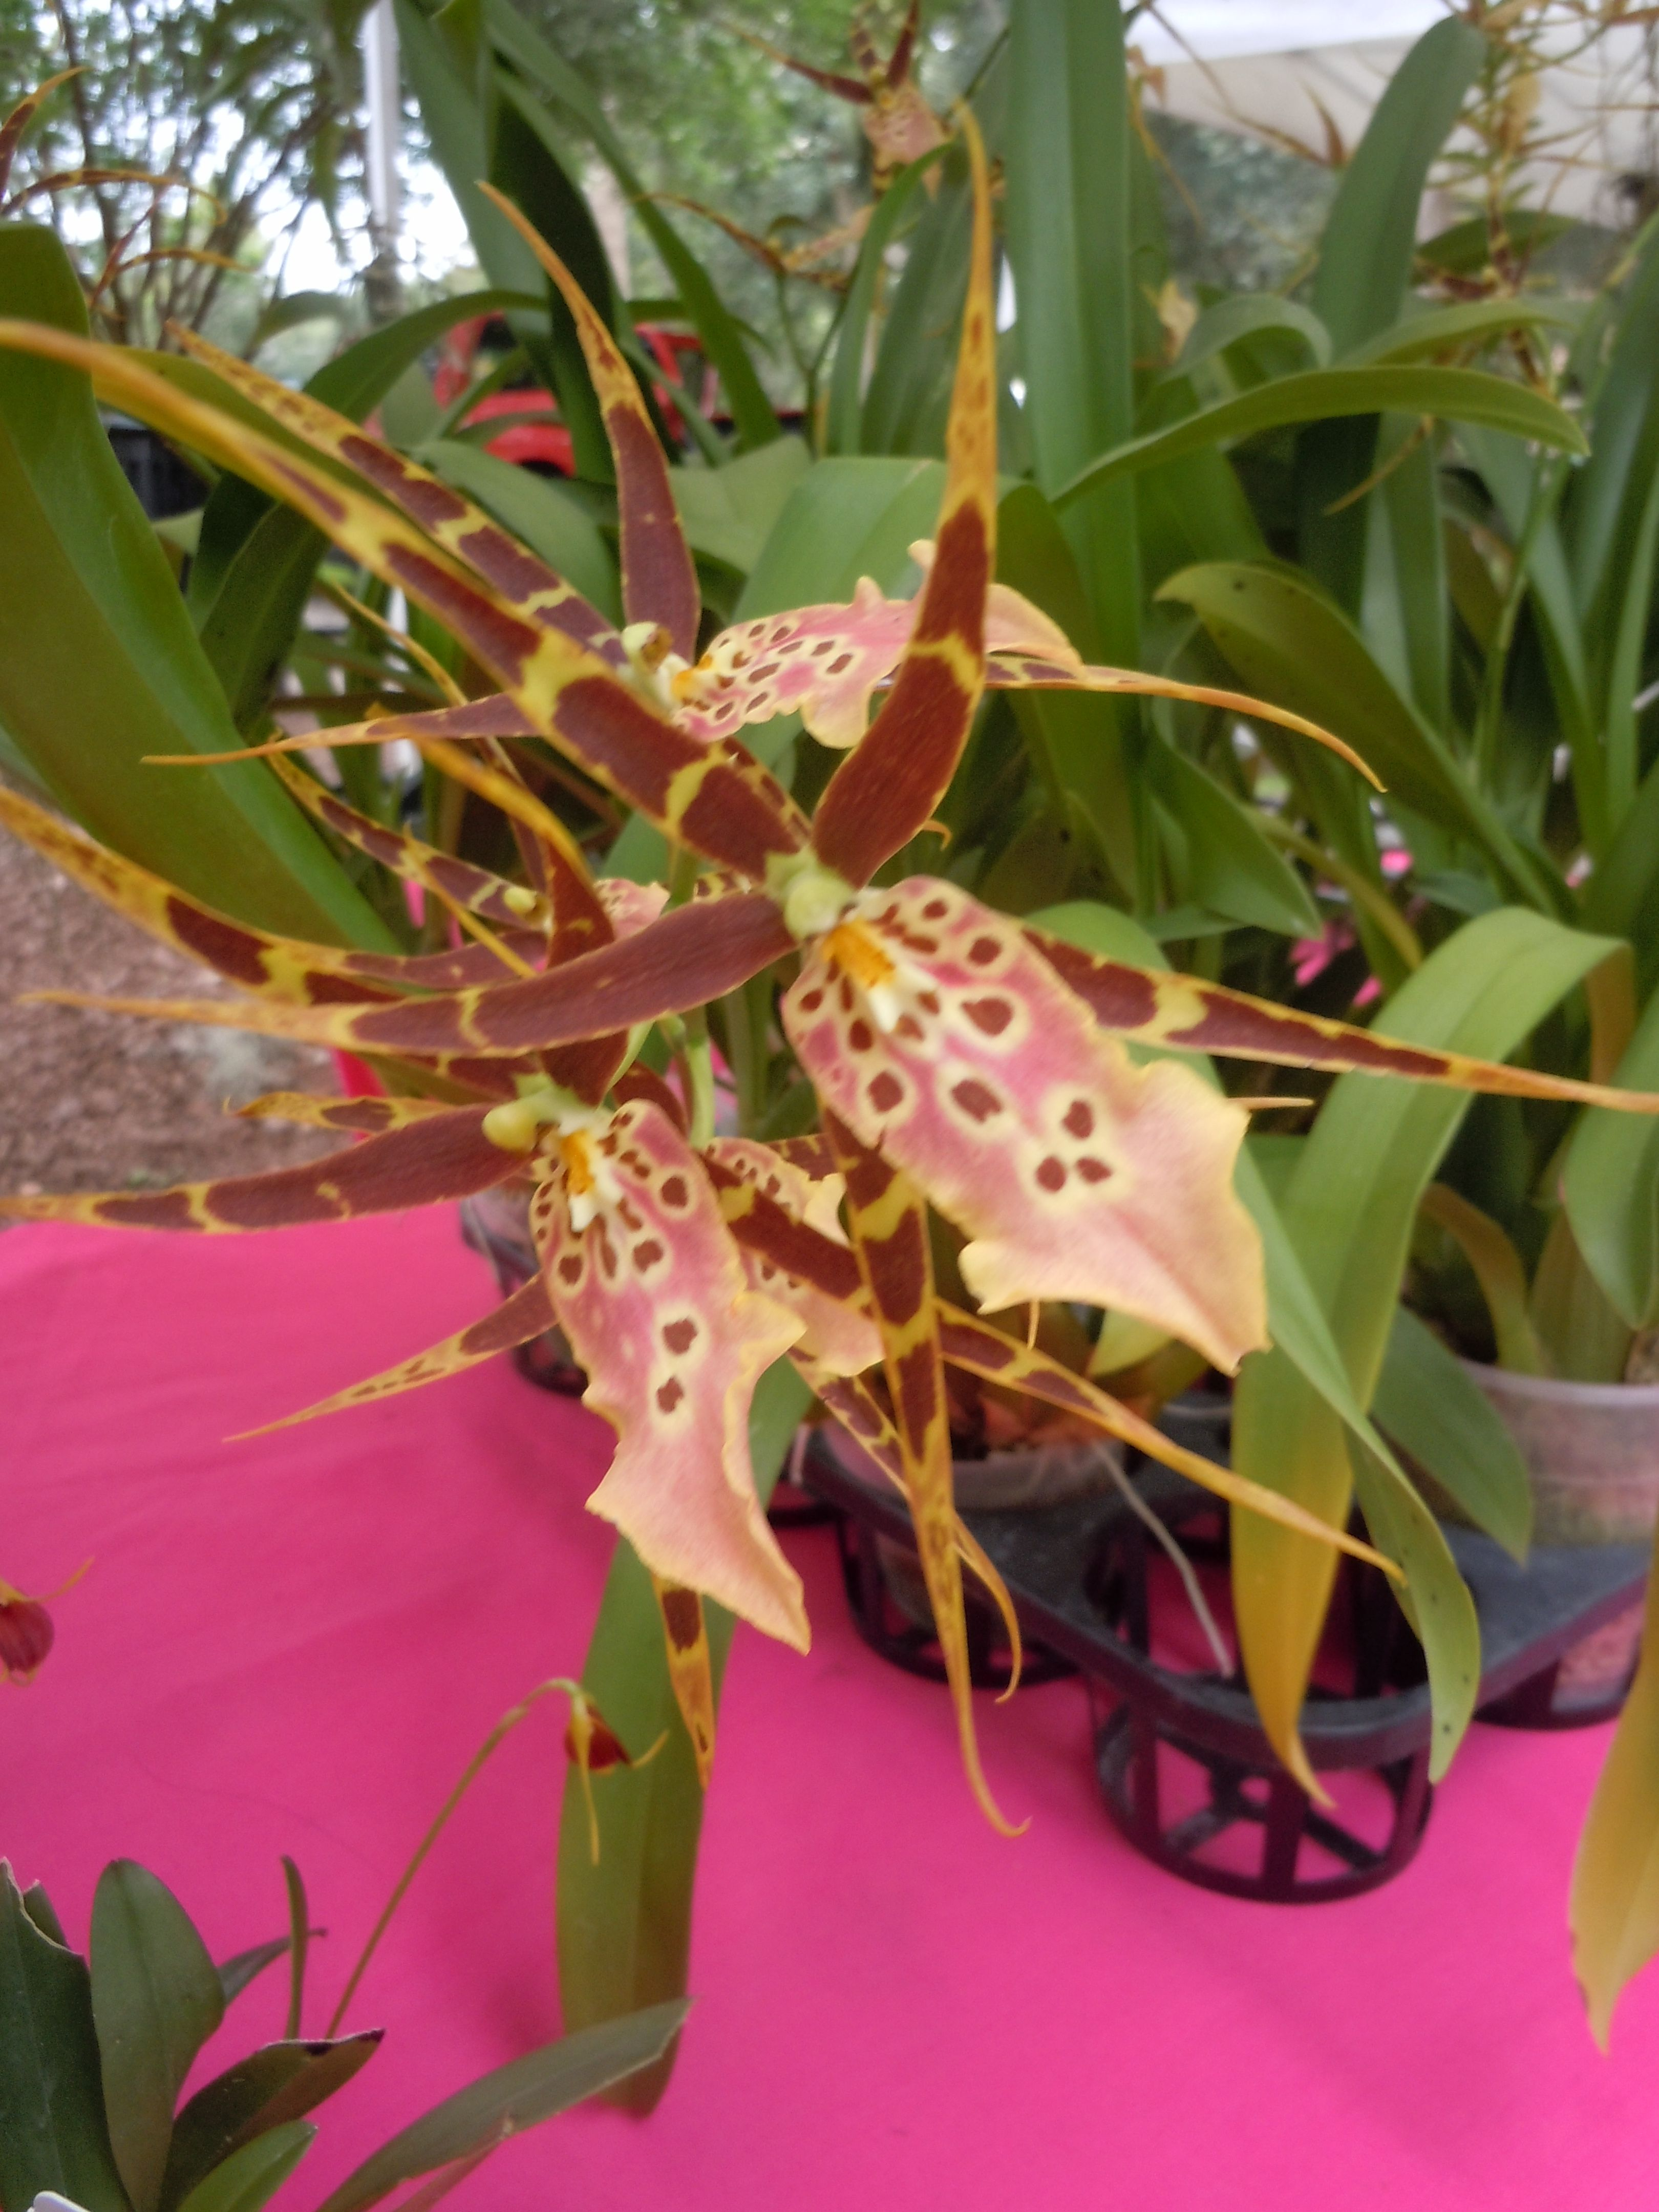 Dramatic orchid from the orchid nanny from apopka as